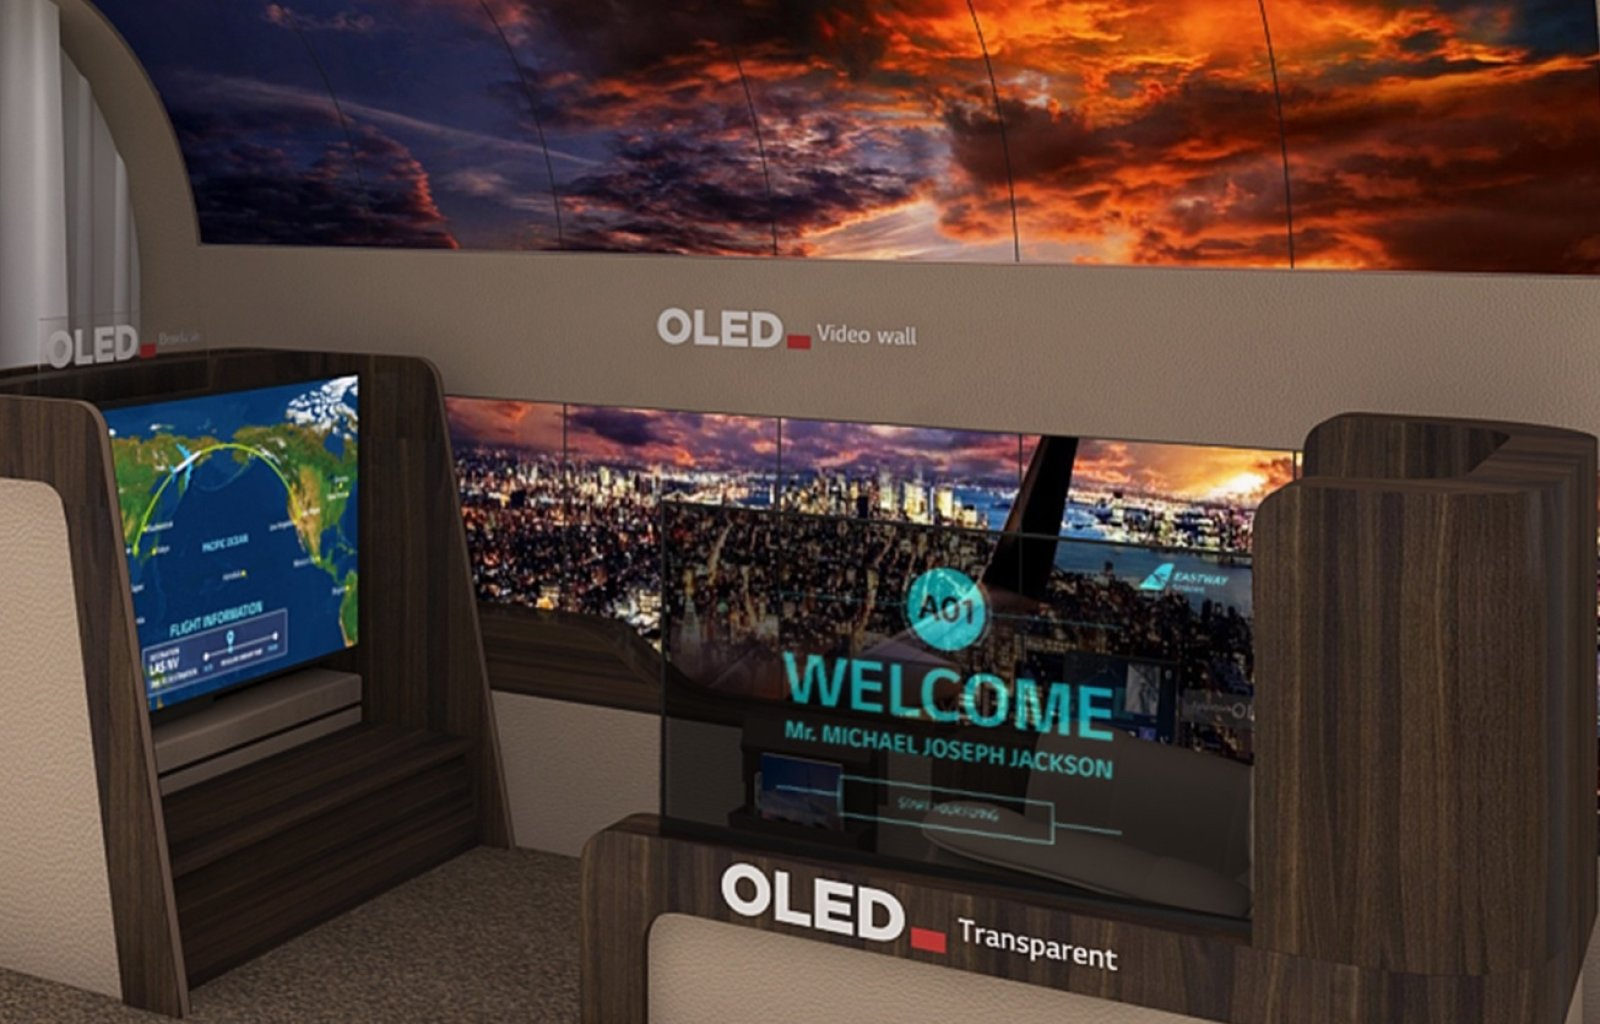 Vizio announces its first OLED TV at CES